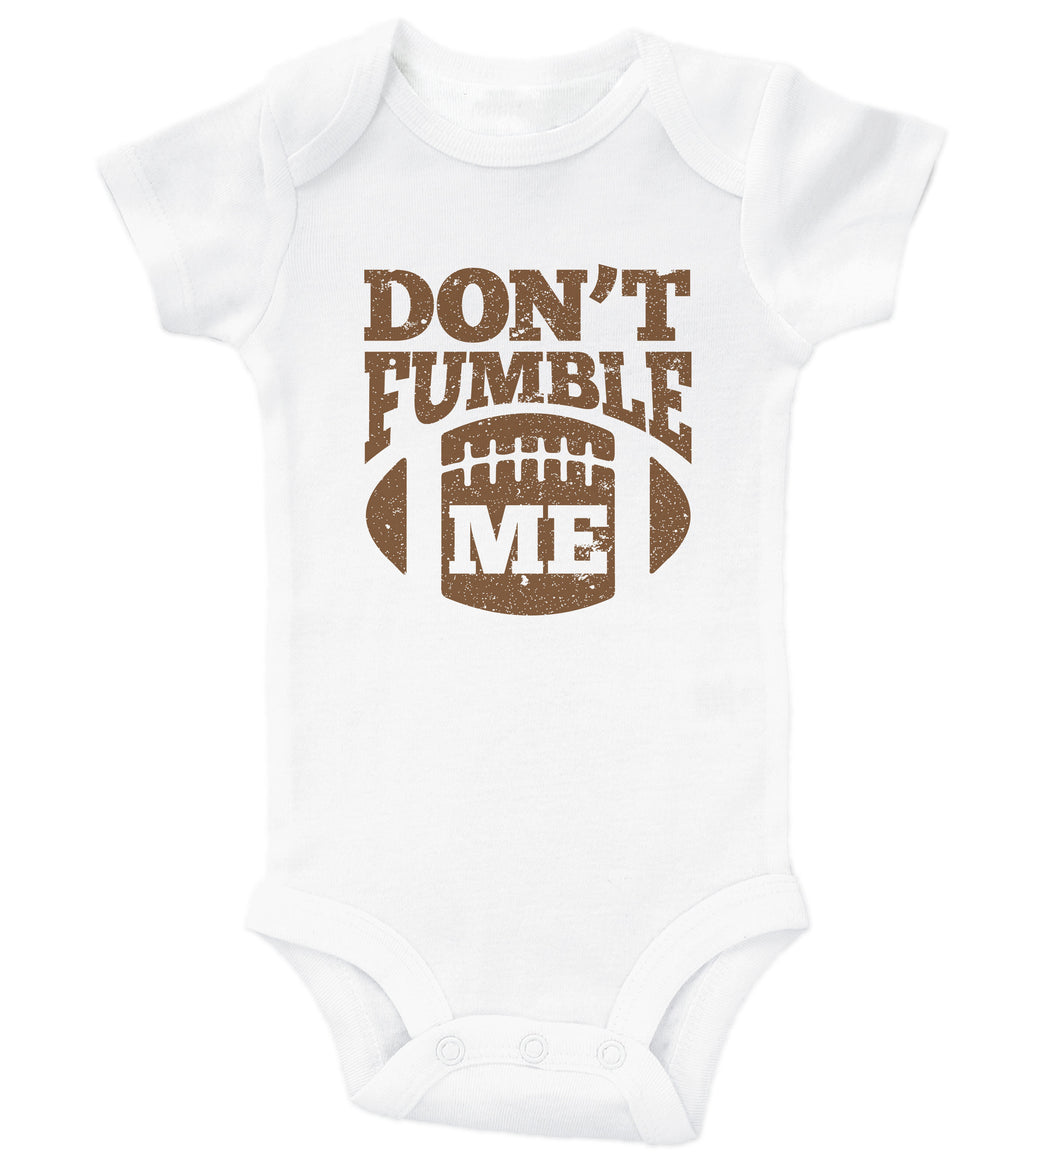 Don't Fumble Me / Football Basic Onesie